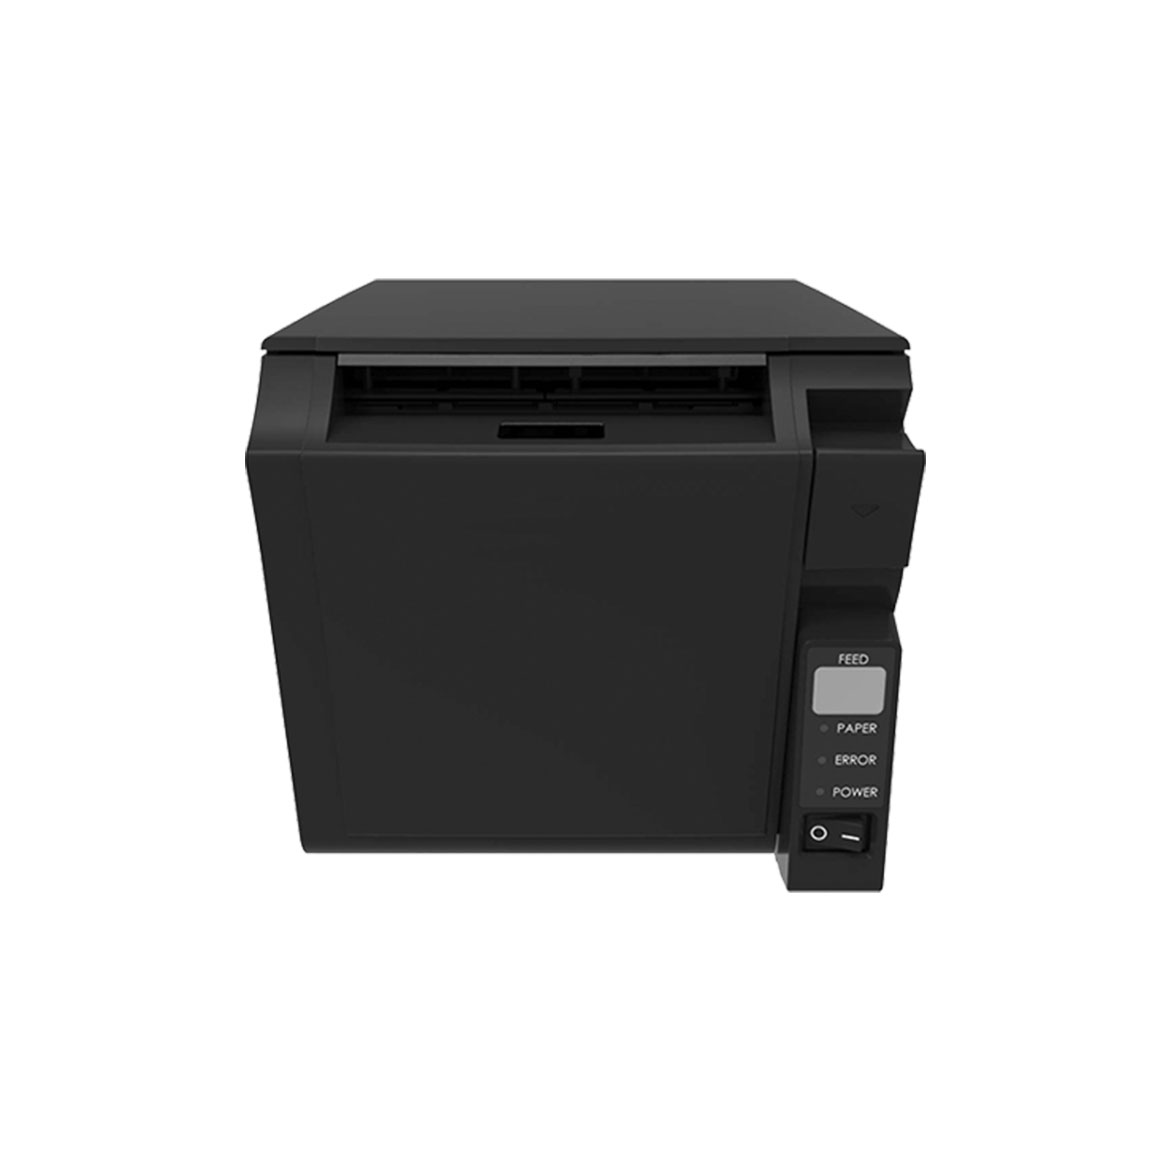 Pioneer STEP-5e Receipt Printer